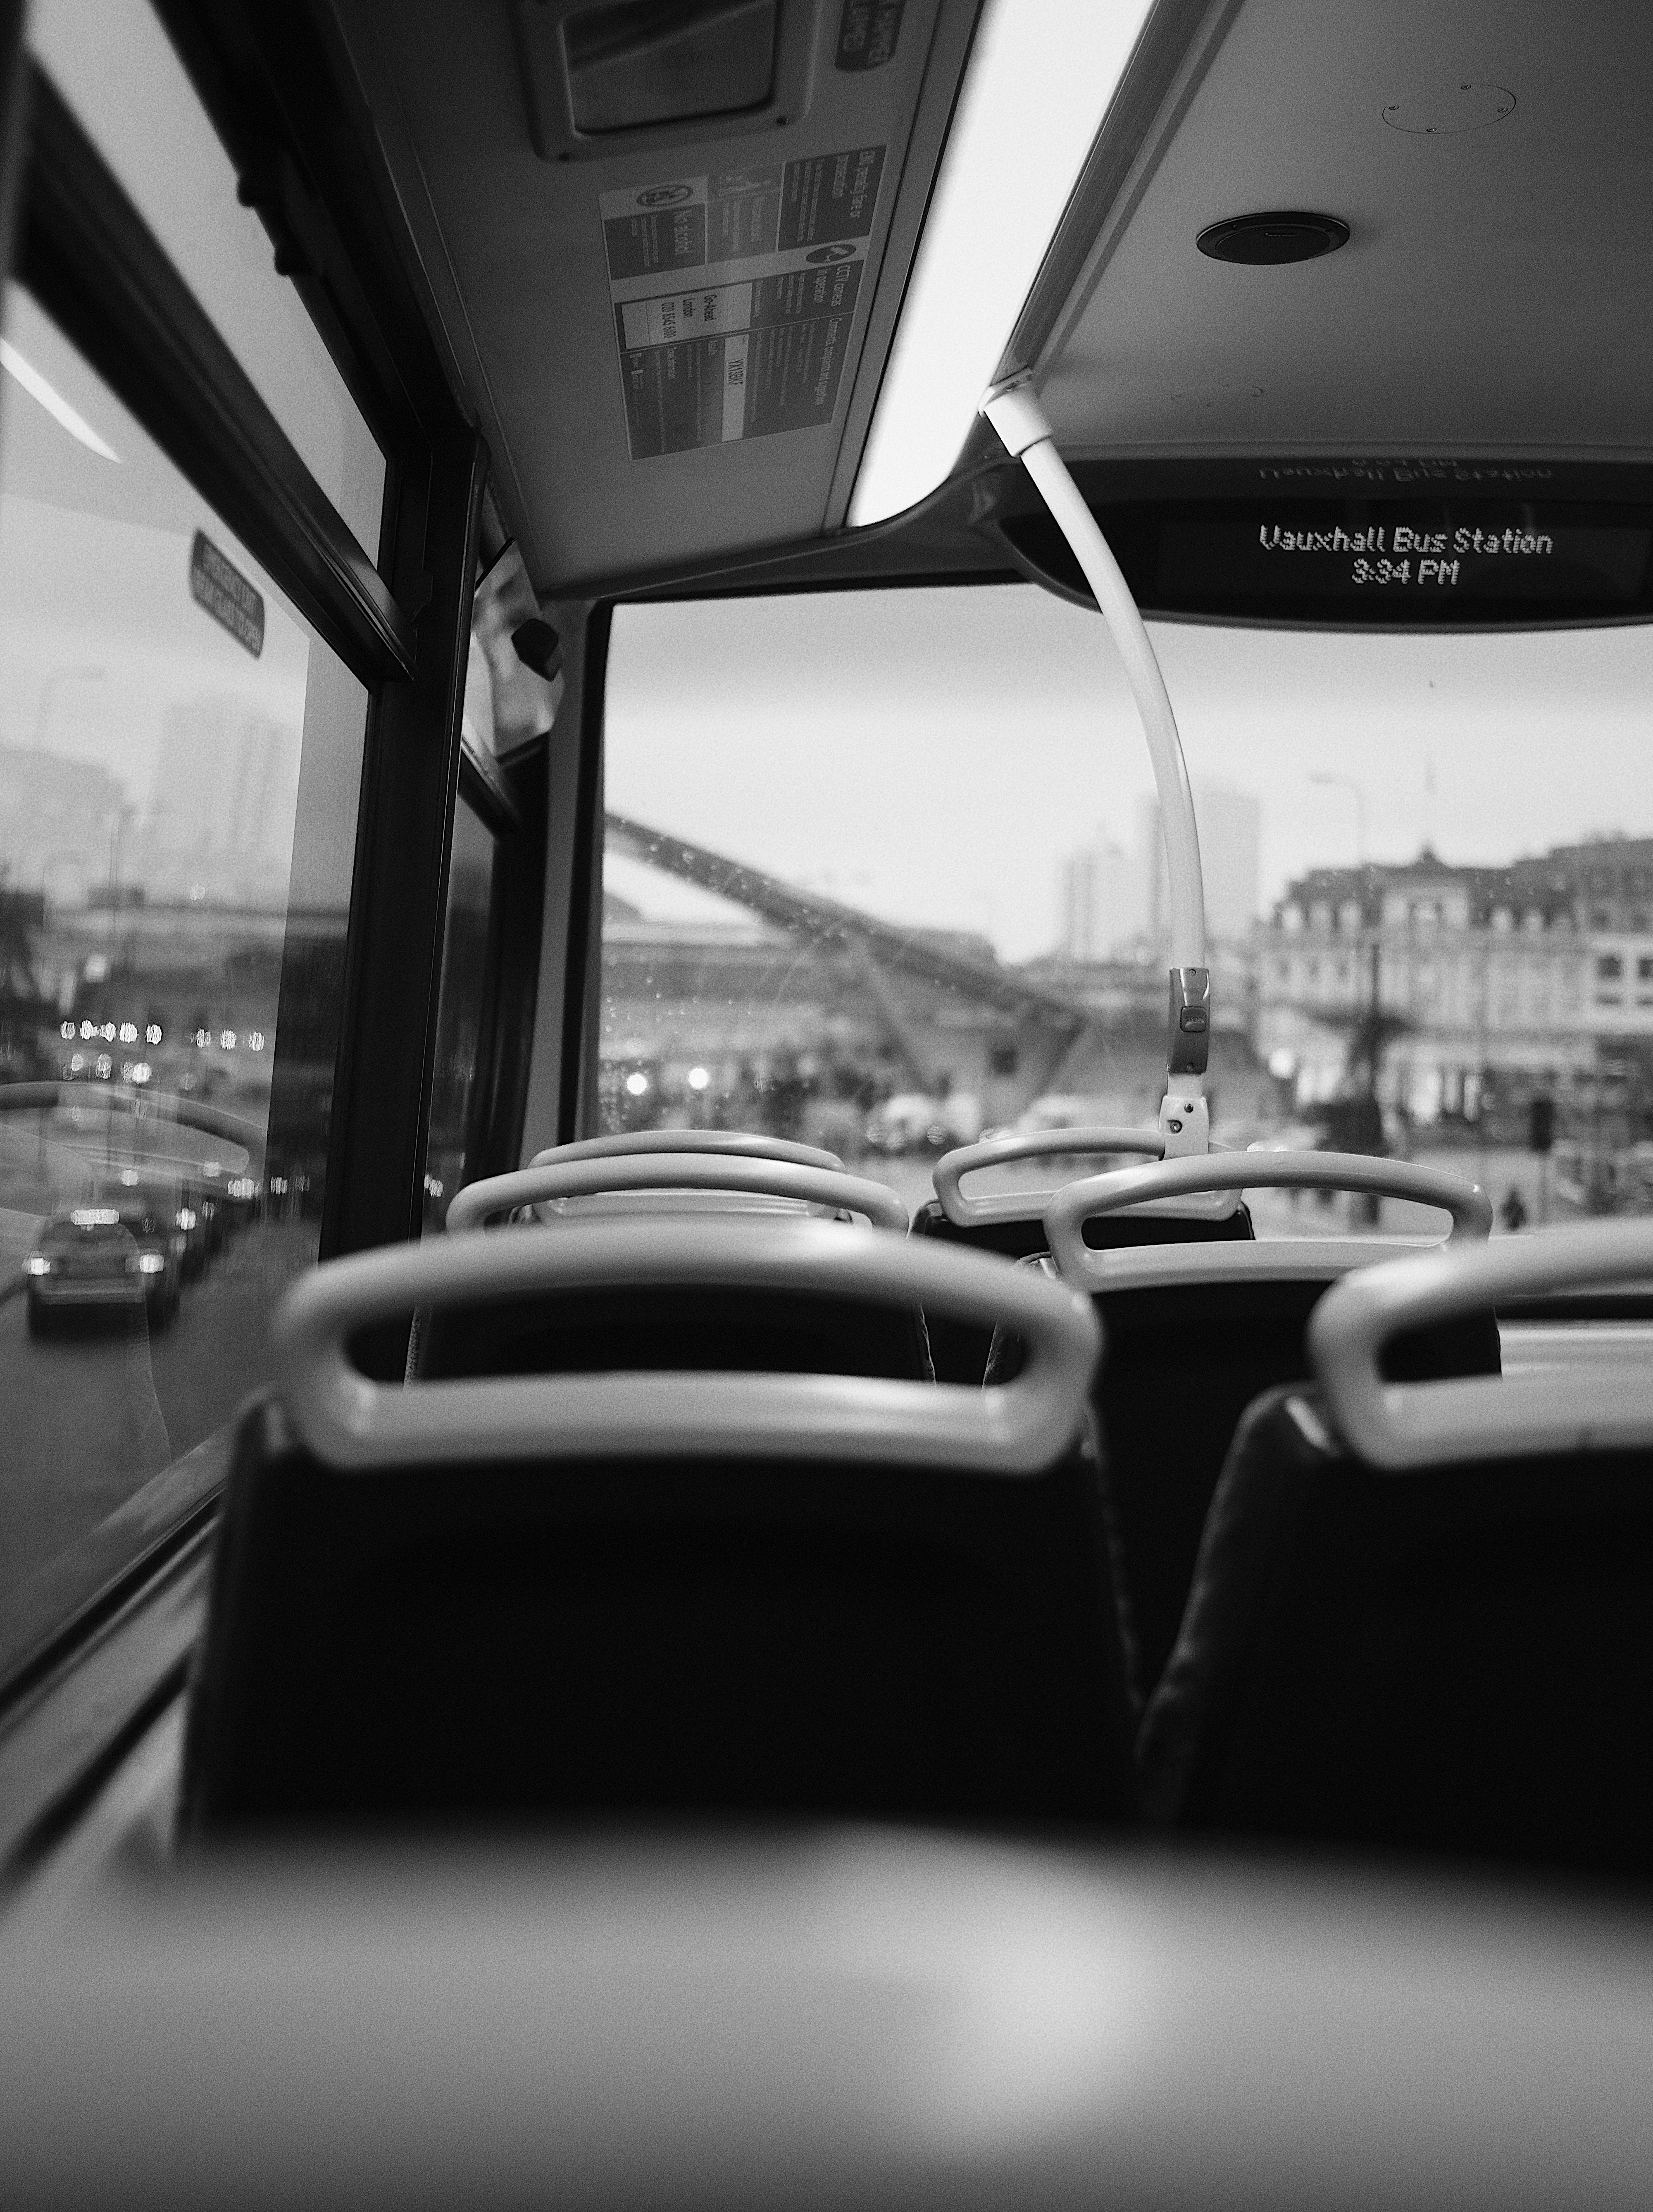 grayscale photo of bus interior